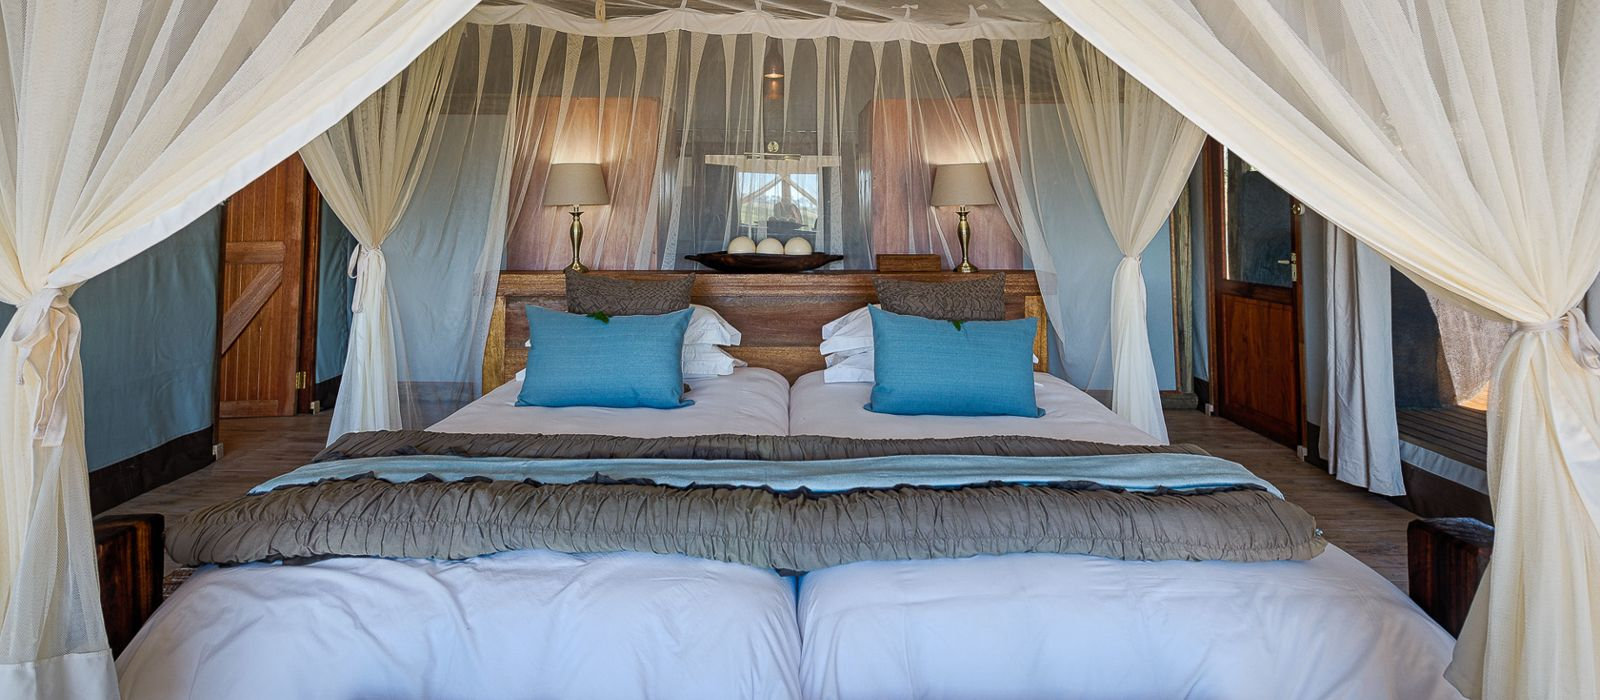 Hotel Tubu Tree Camp Botswana